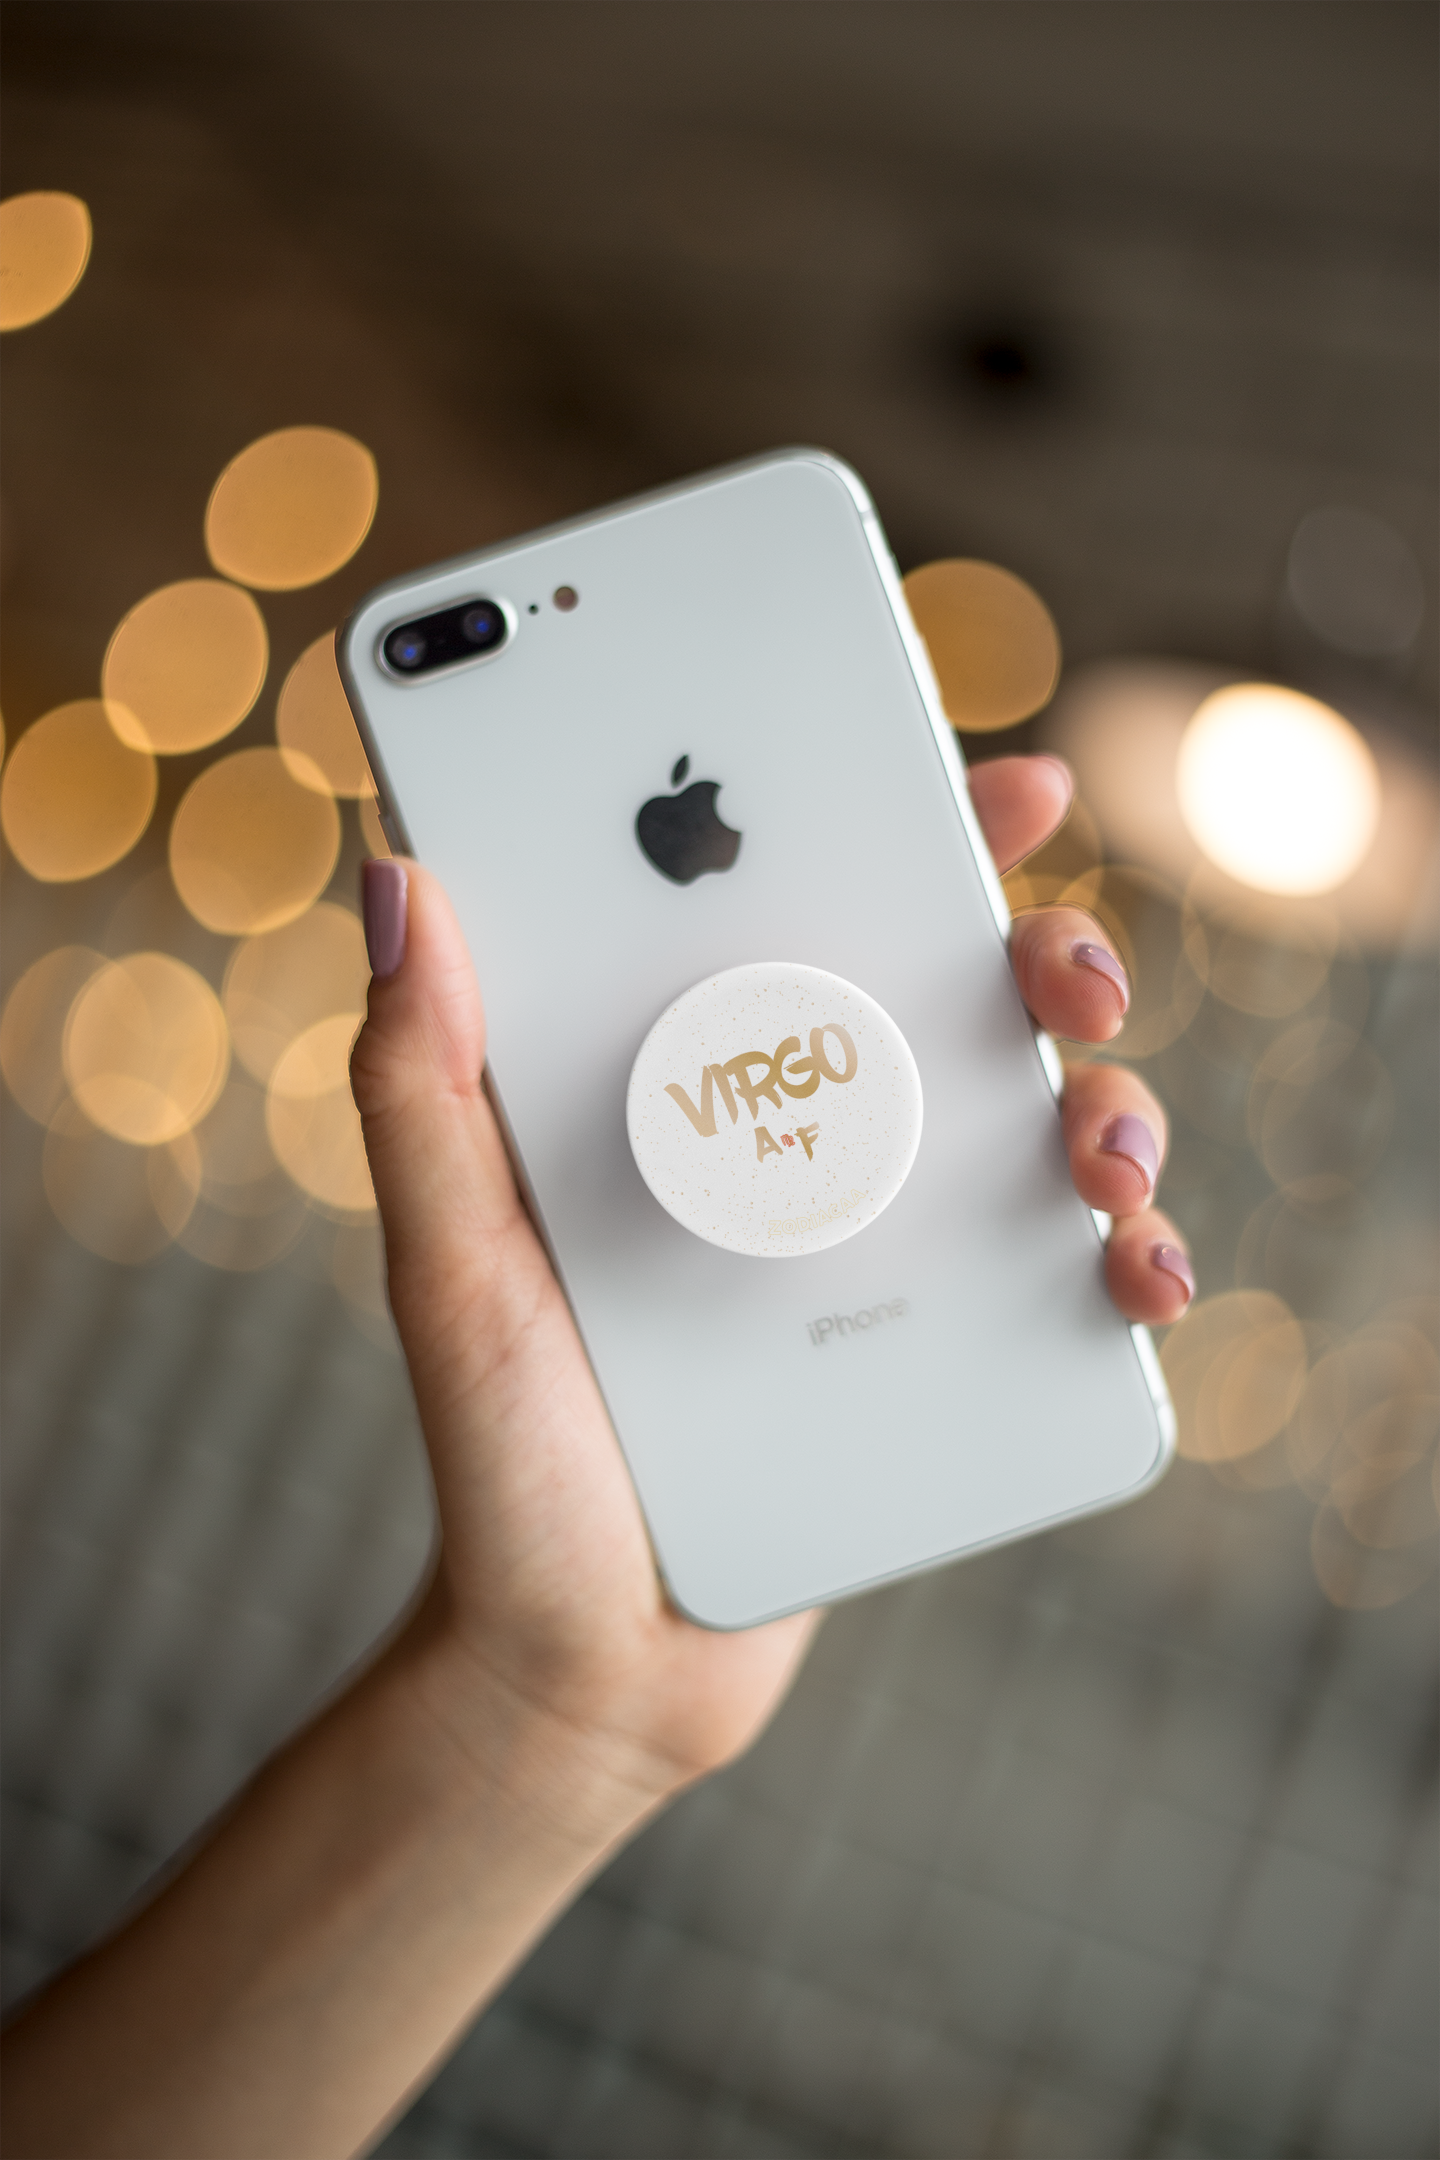 Virgo AF Grip White Phones and Tablets